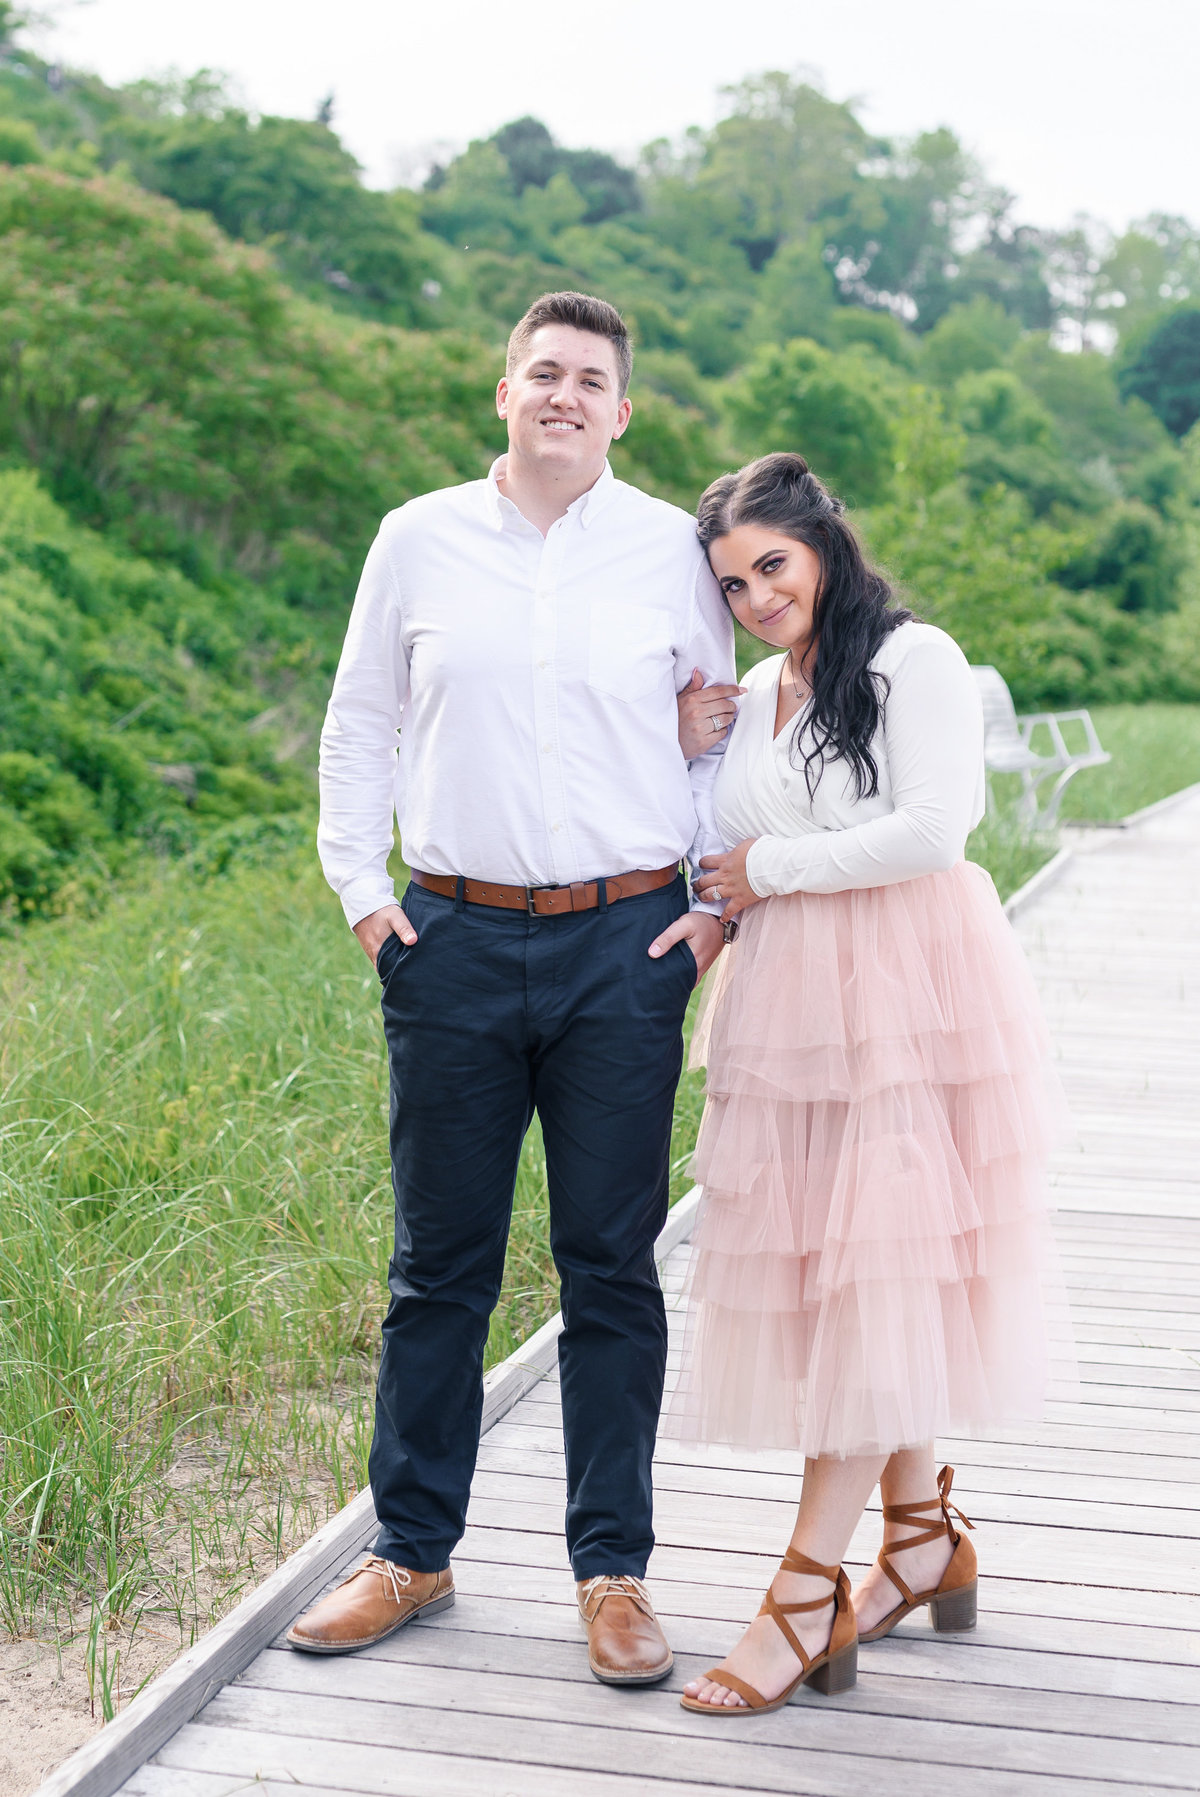 atwater-beach-engagement-milwaukee-the-paper-elephant-016